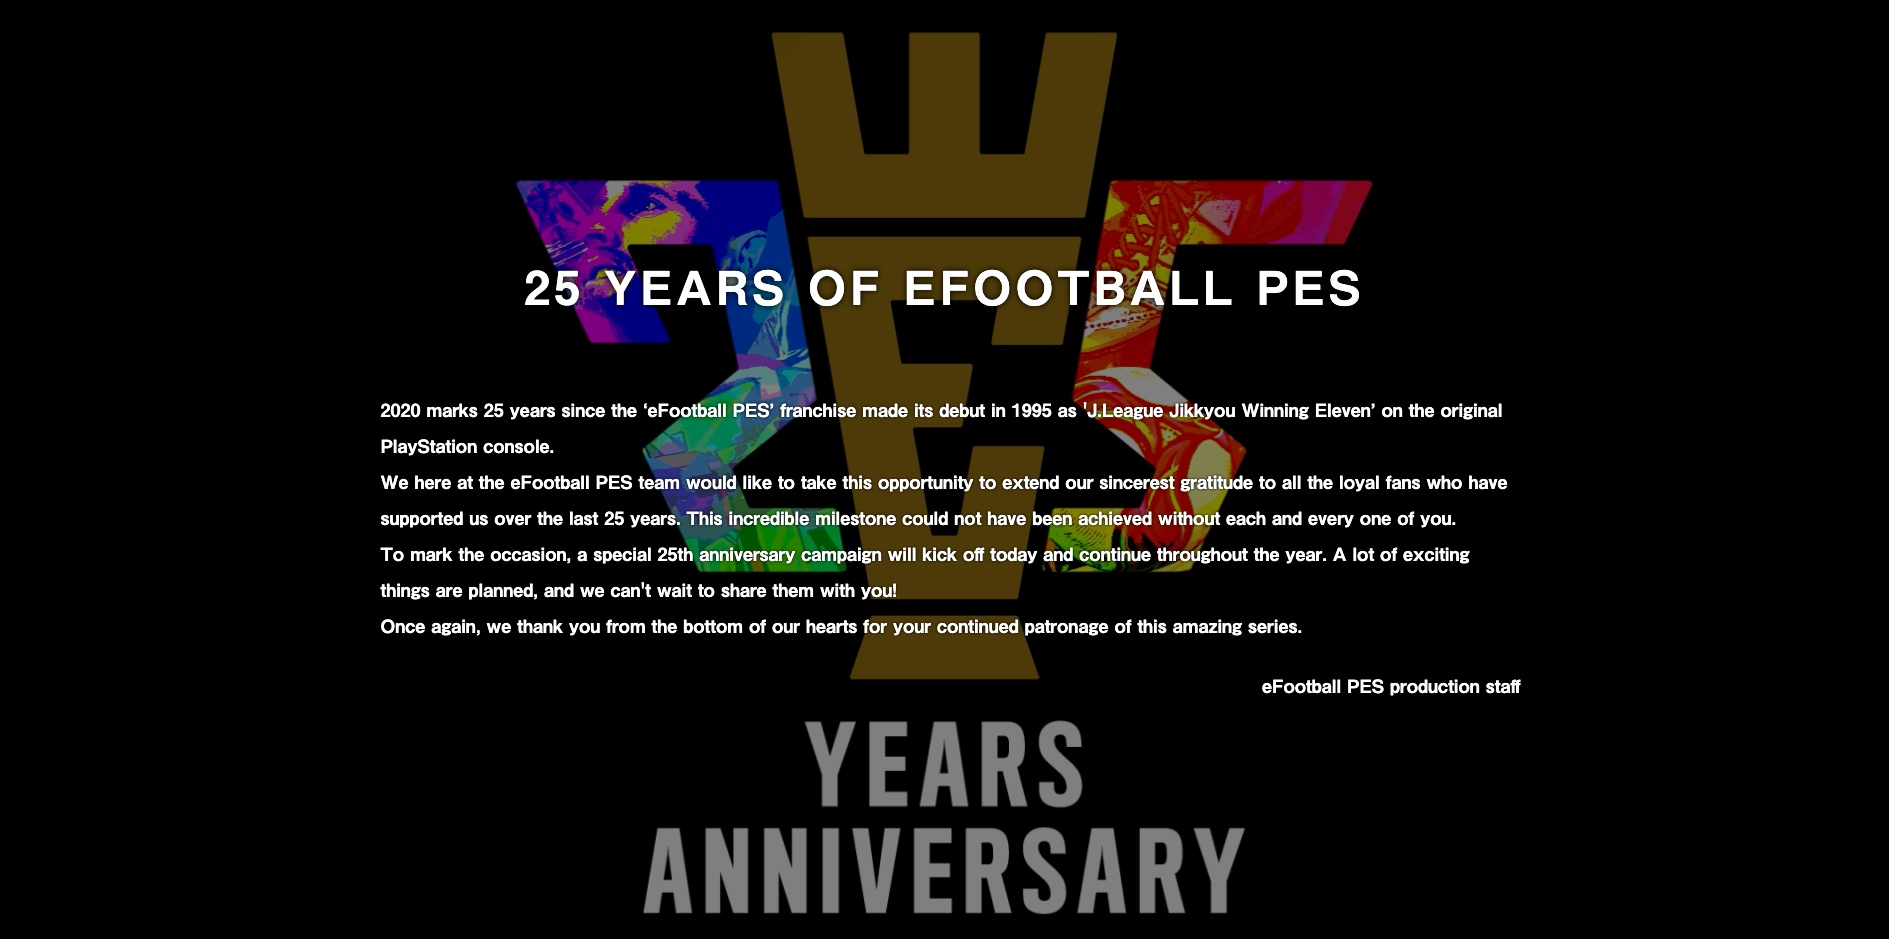 PES 25 year anniversary announcement